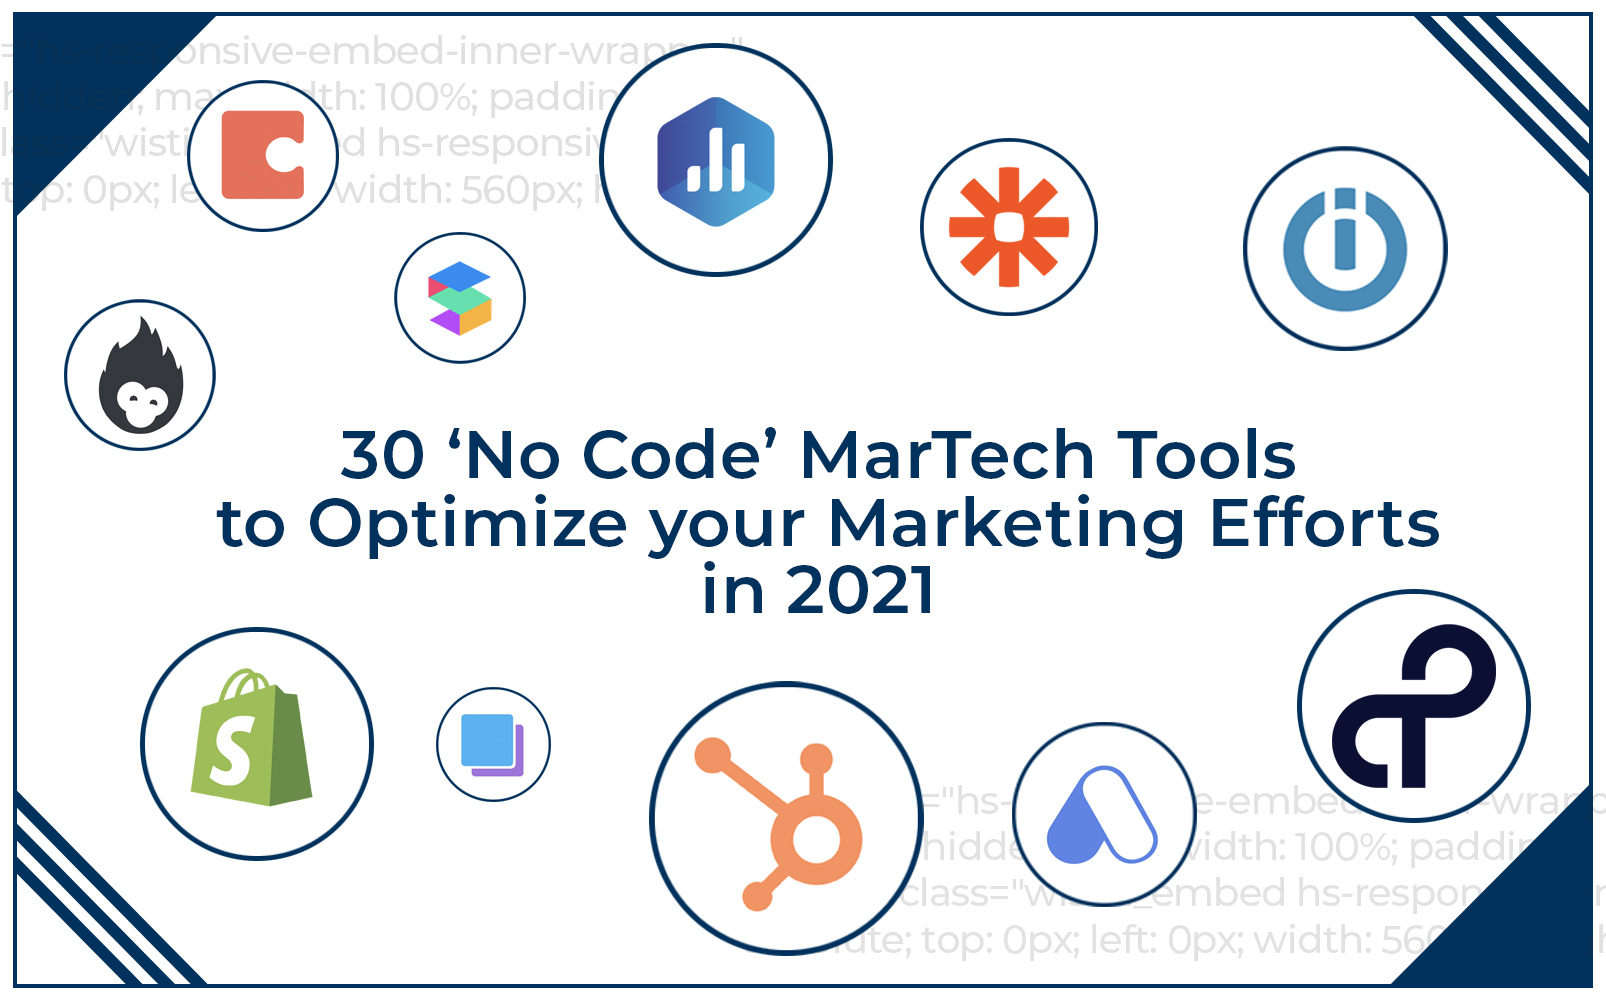 30 no code martech tools to optimize your marketing efforts in 2021